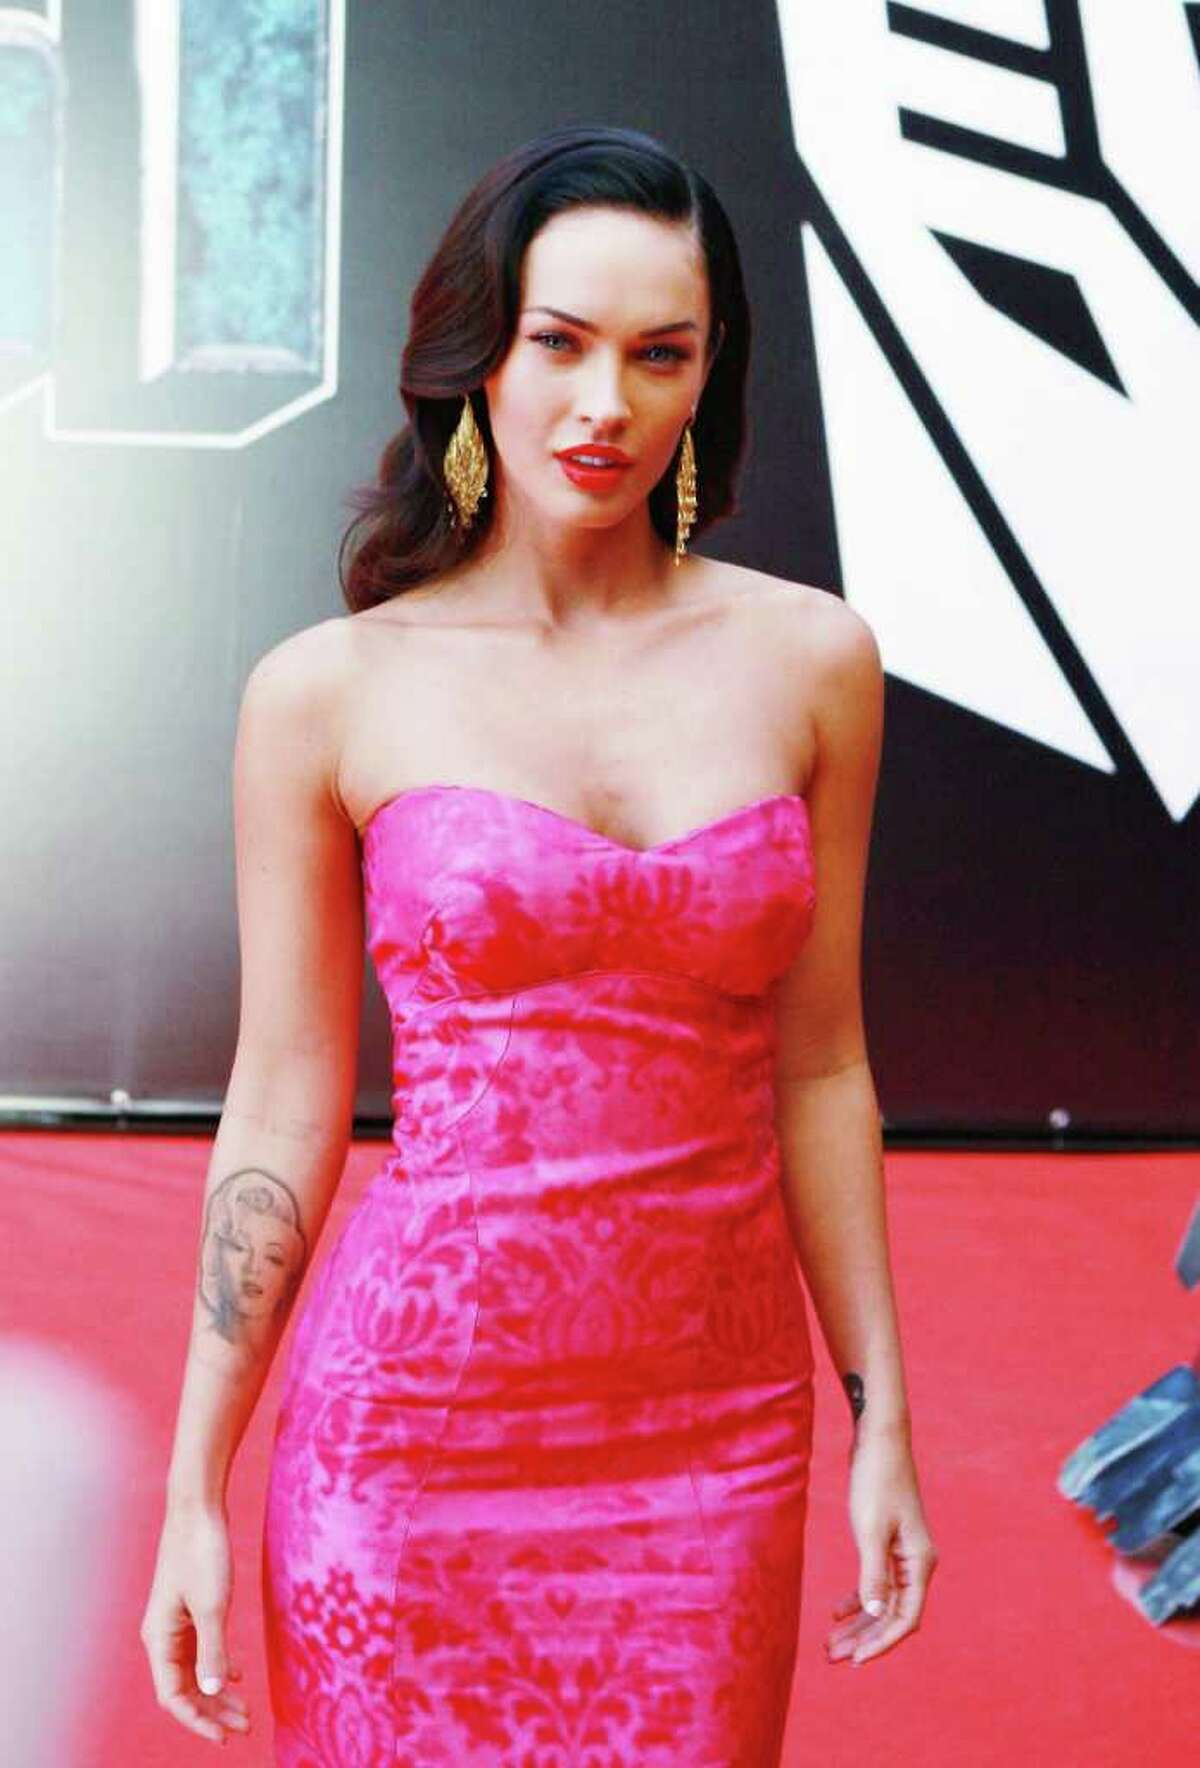 Director Michael Bay just confirmed that actress Megan Fox was replaced in